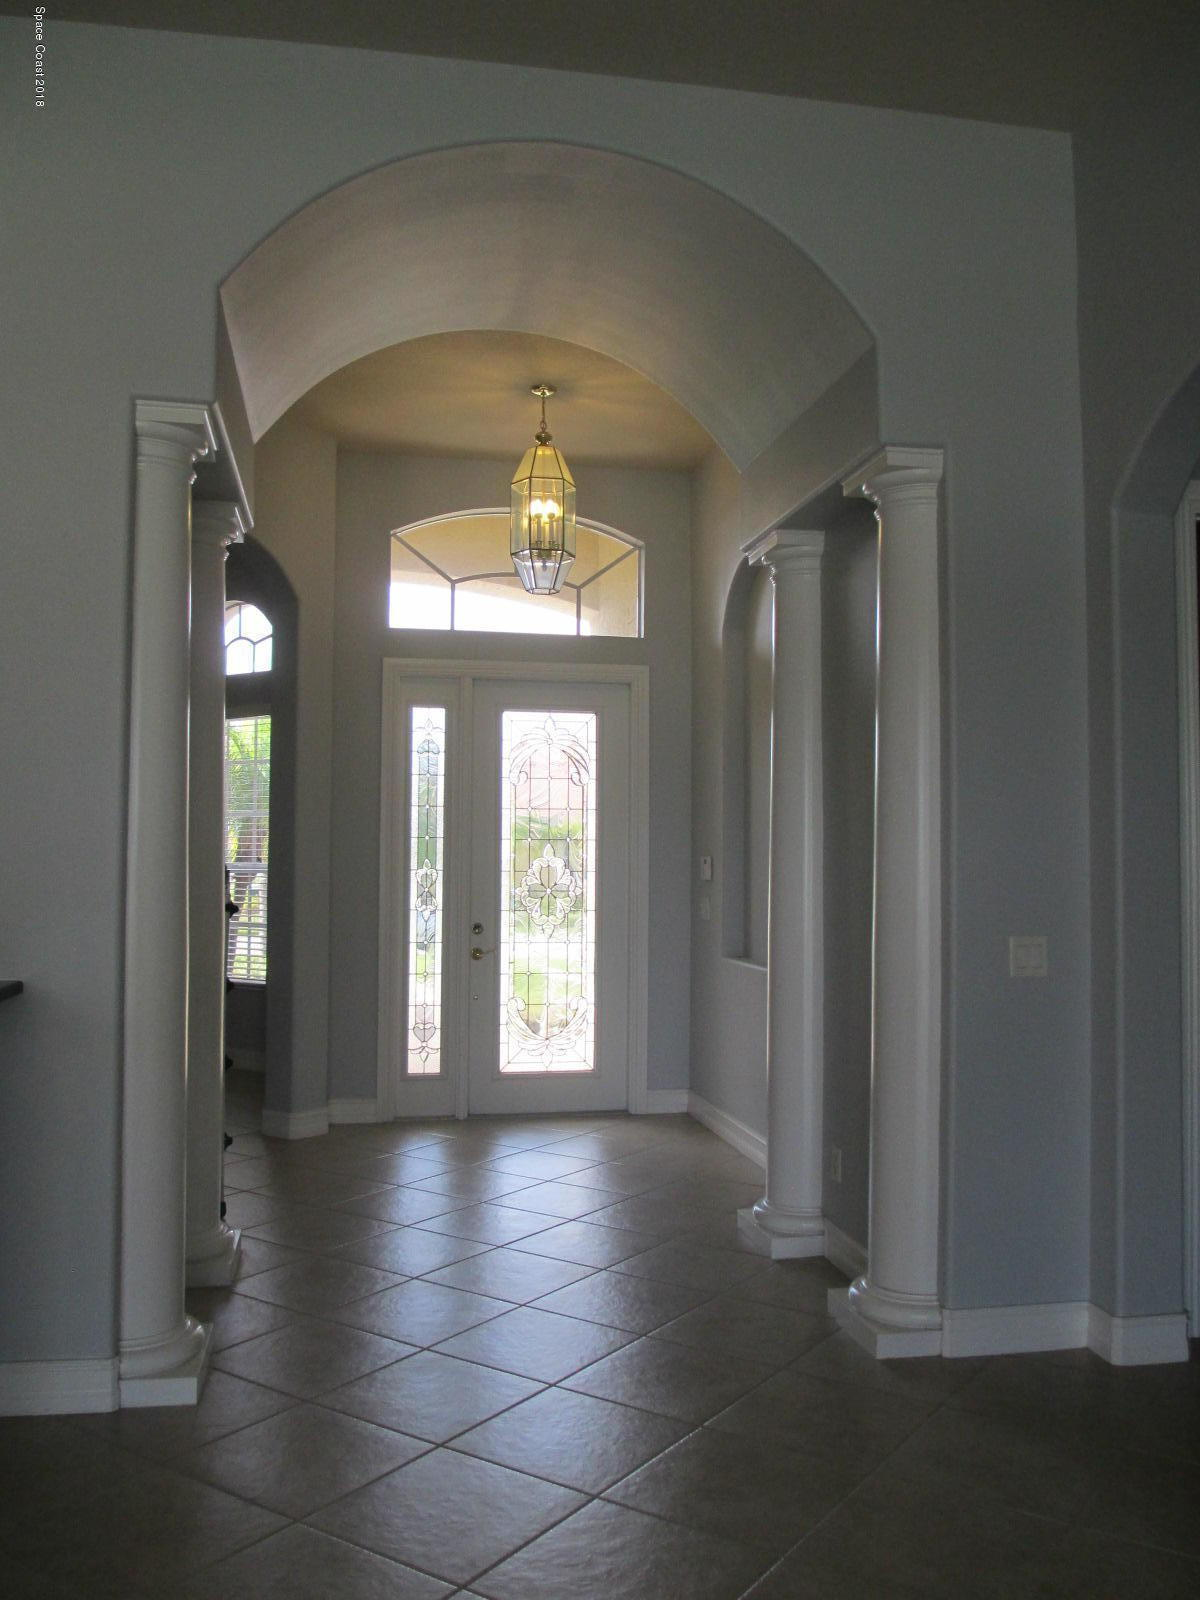 Additional photo for property listing at 6505 Arroyo 6505 Arroyo Viera, 佛罗里达州 32940 美国